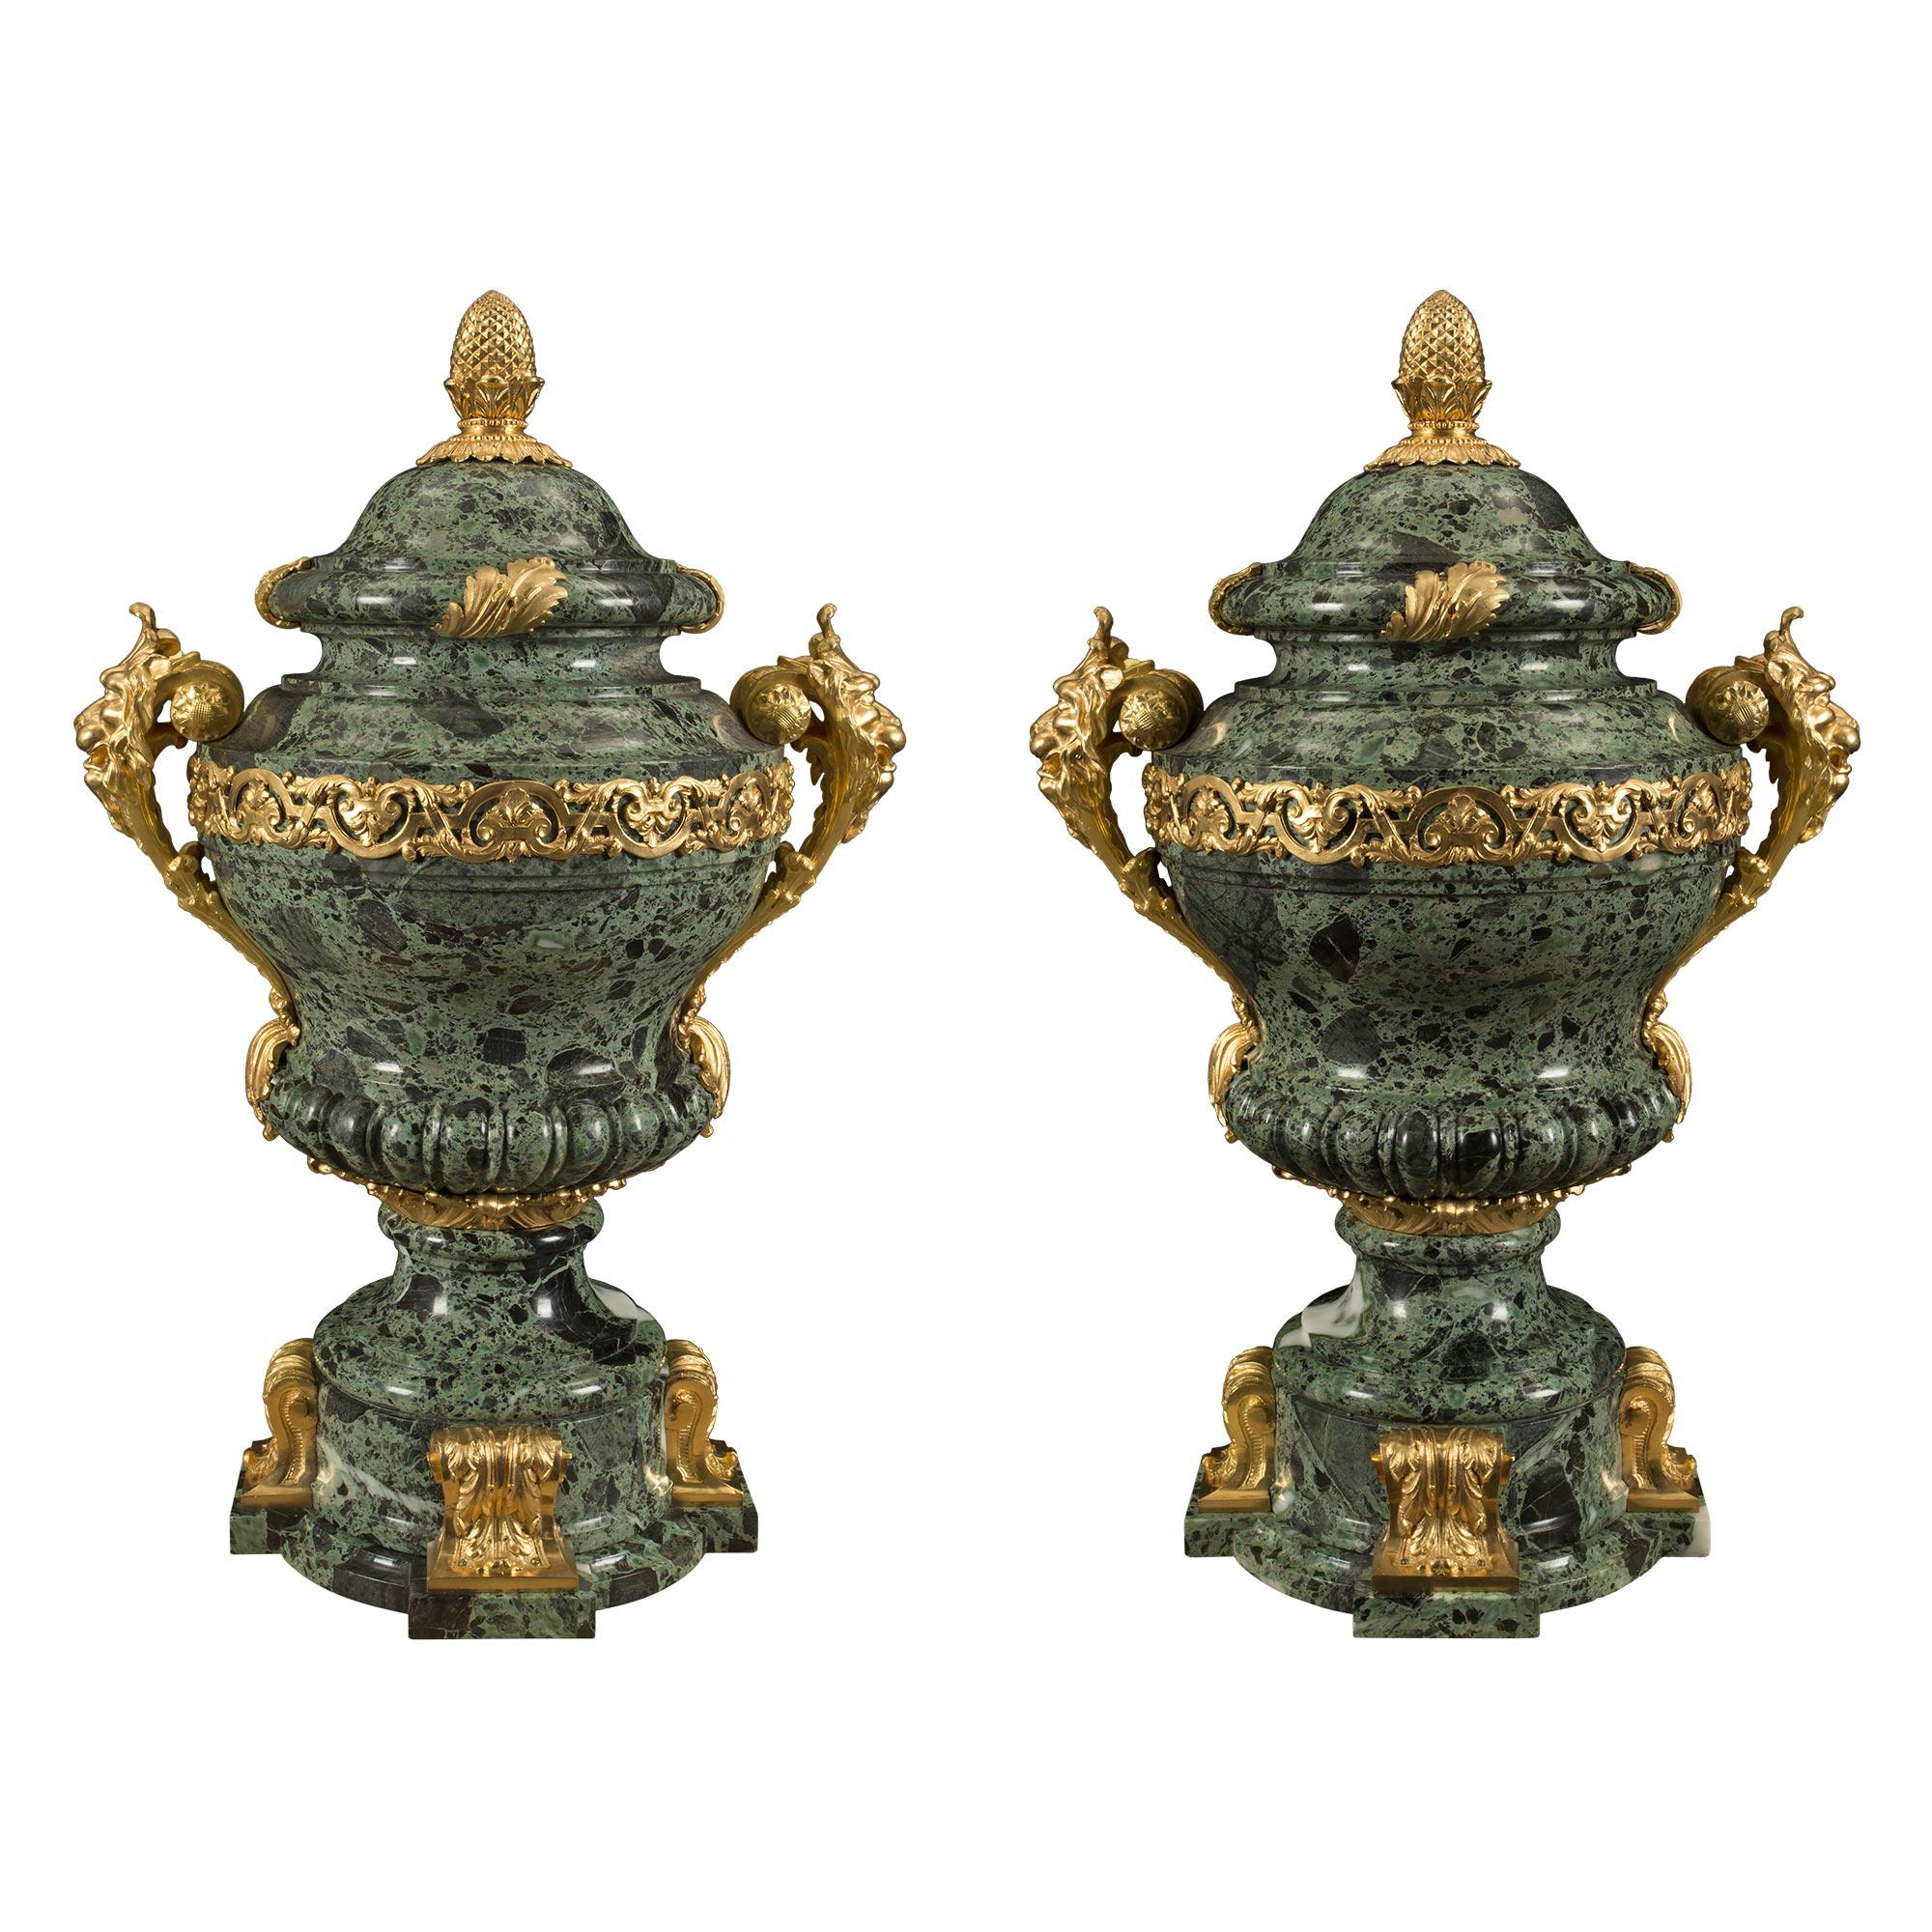 Pair of French 19th Century Louis XVI Style Belle Époque Period Urns